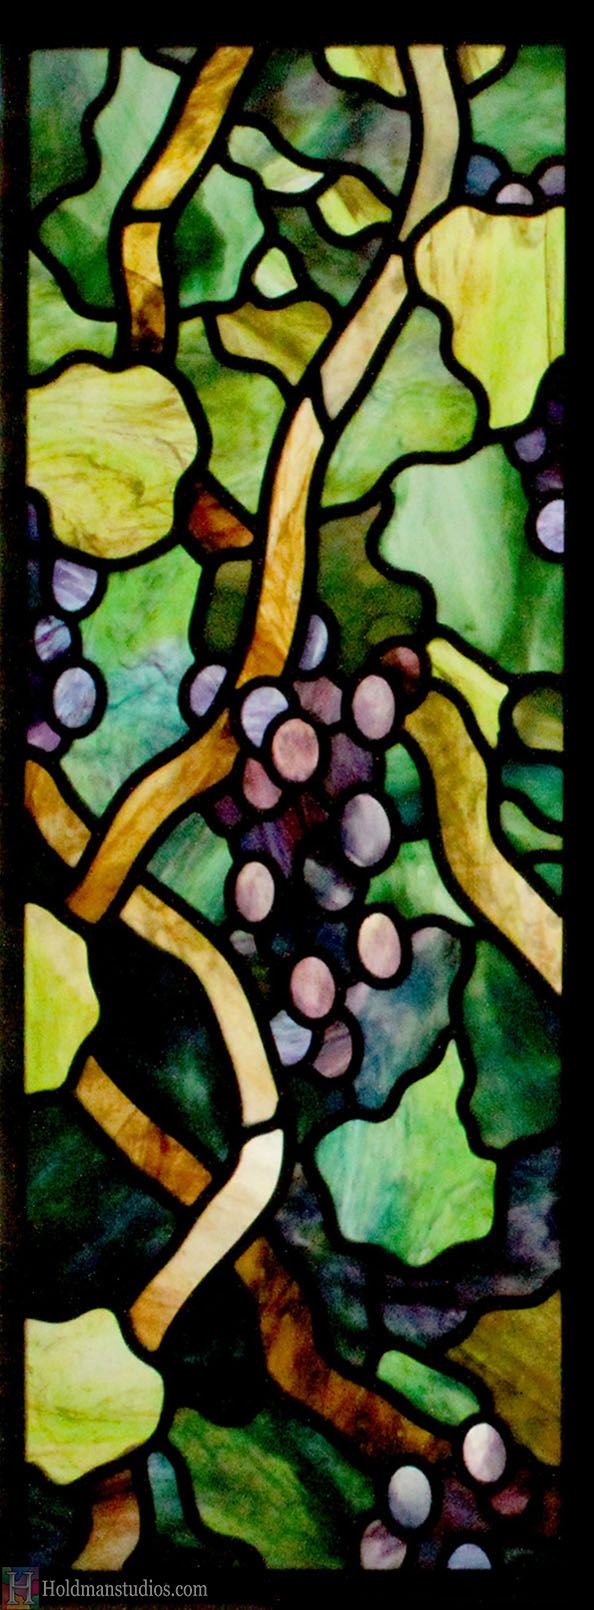 stained glass kitchen cabinet window of vinesleavesblossomsand grapescreated by artists under the direction of tom holdman at holdman studios